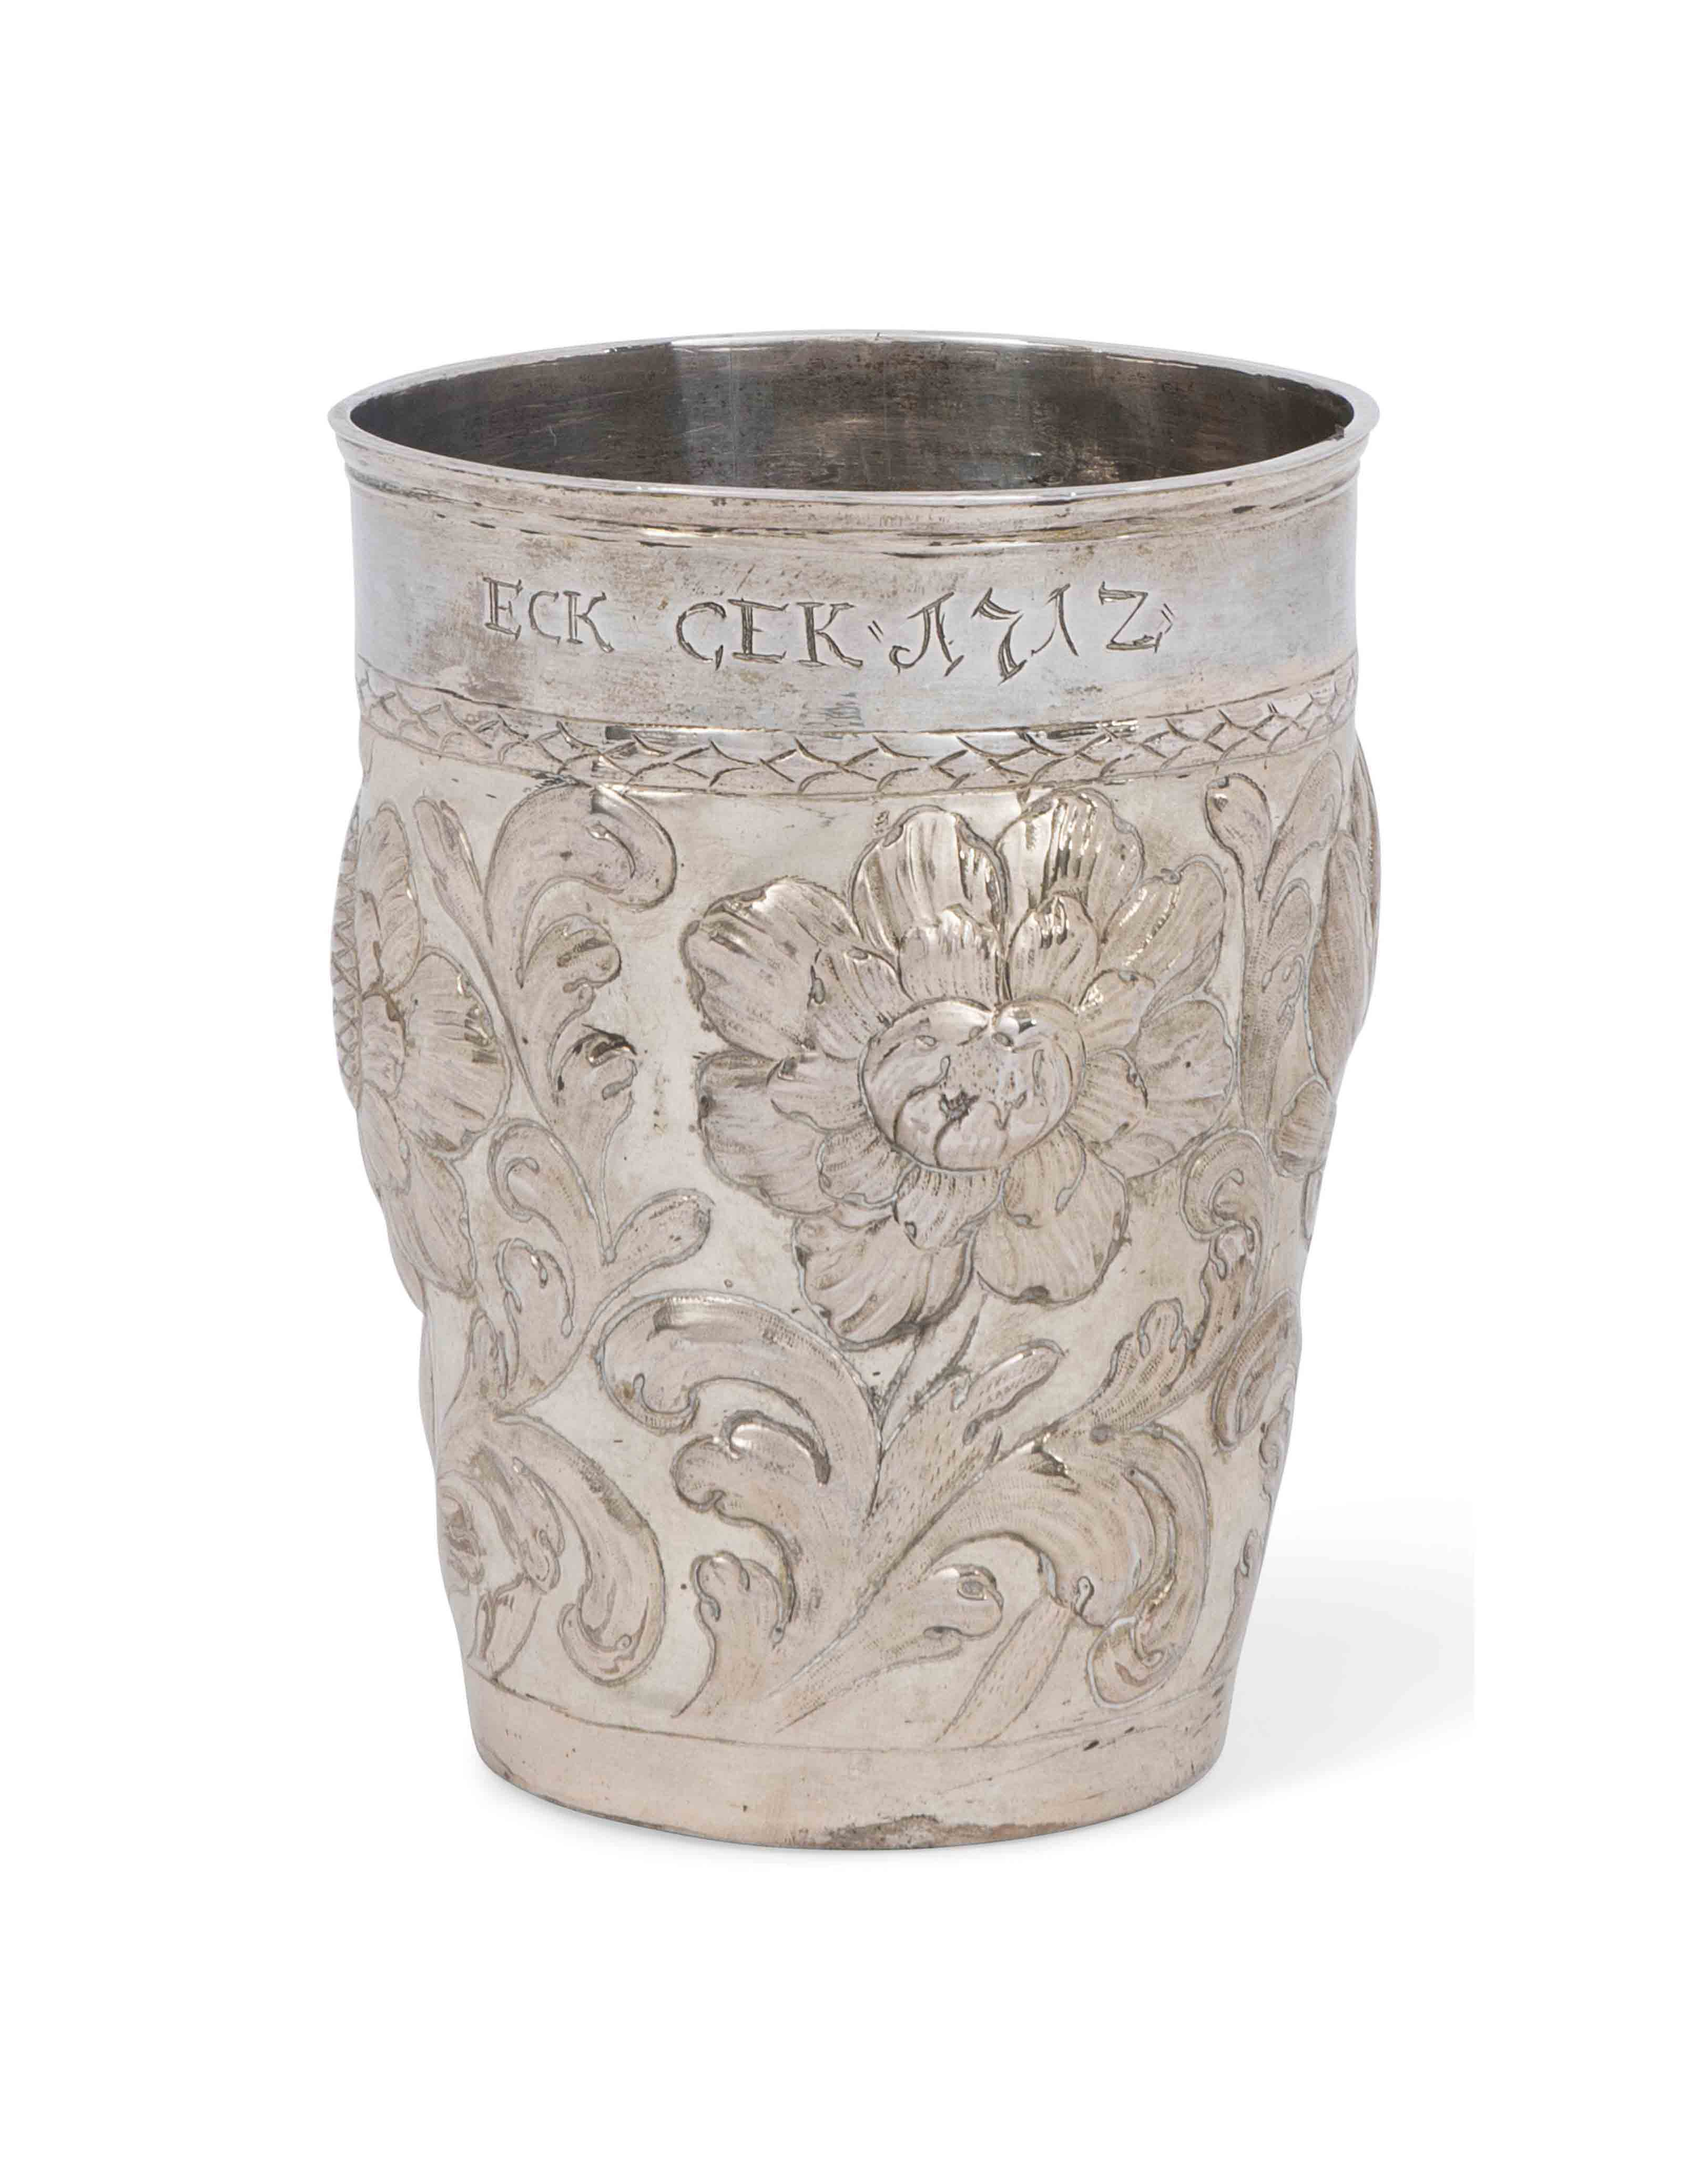 A CONTINENTAL SILVER BEAKER OF